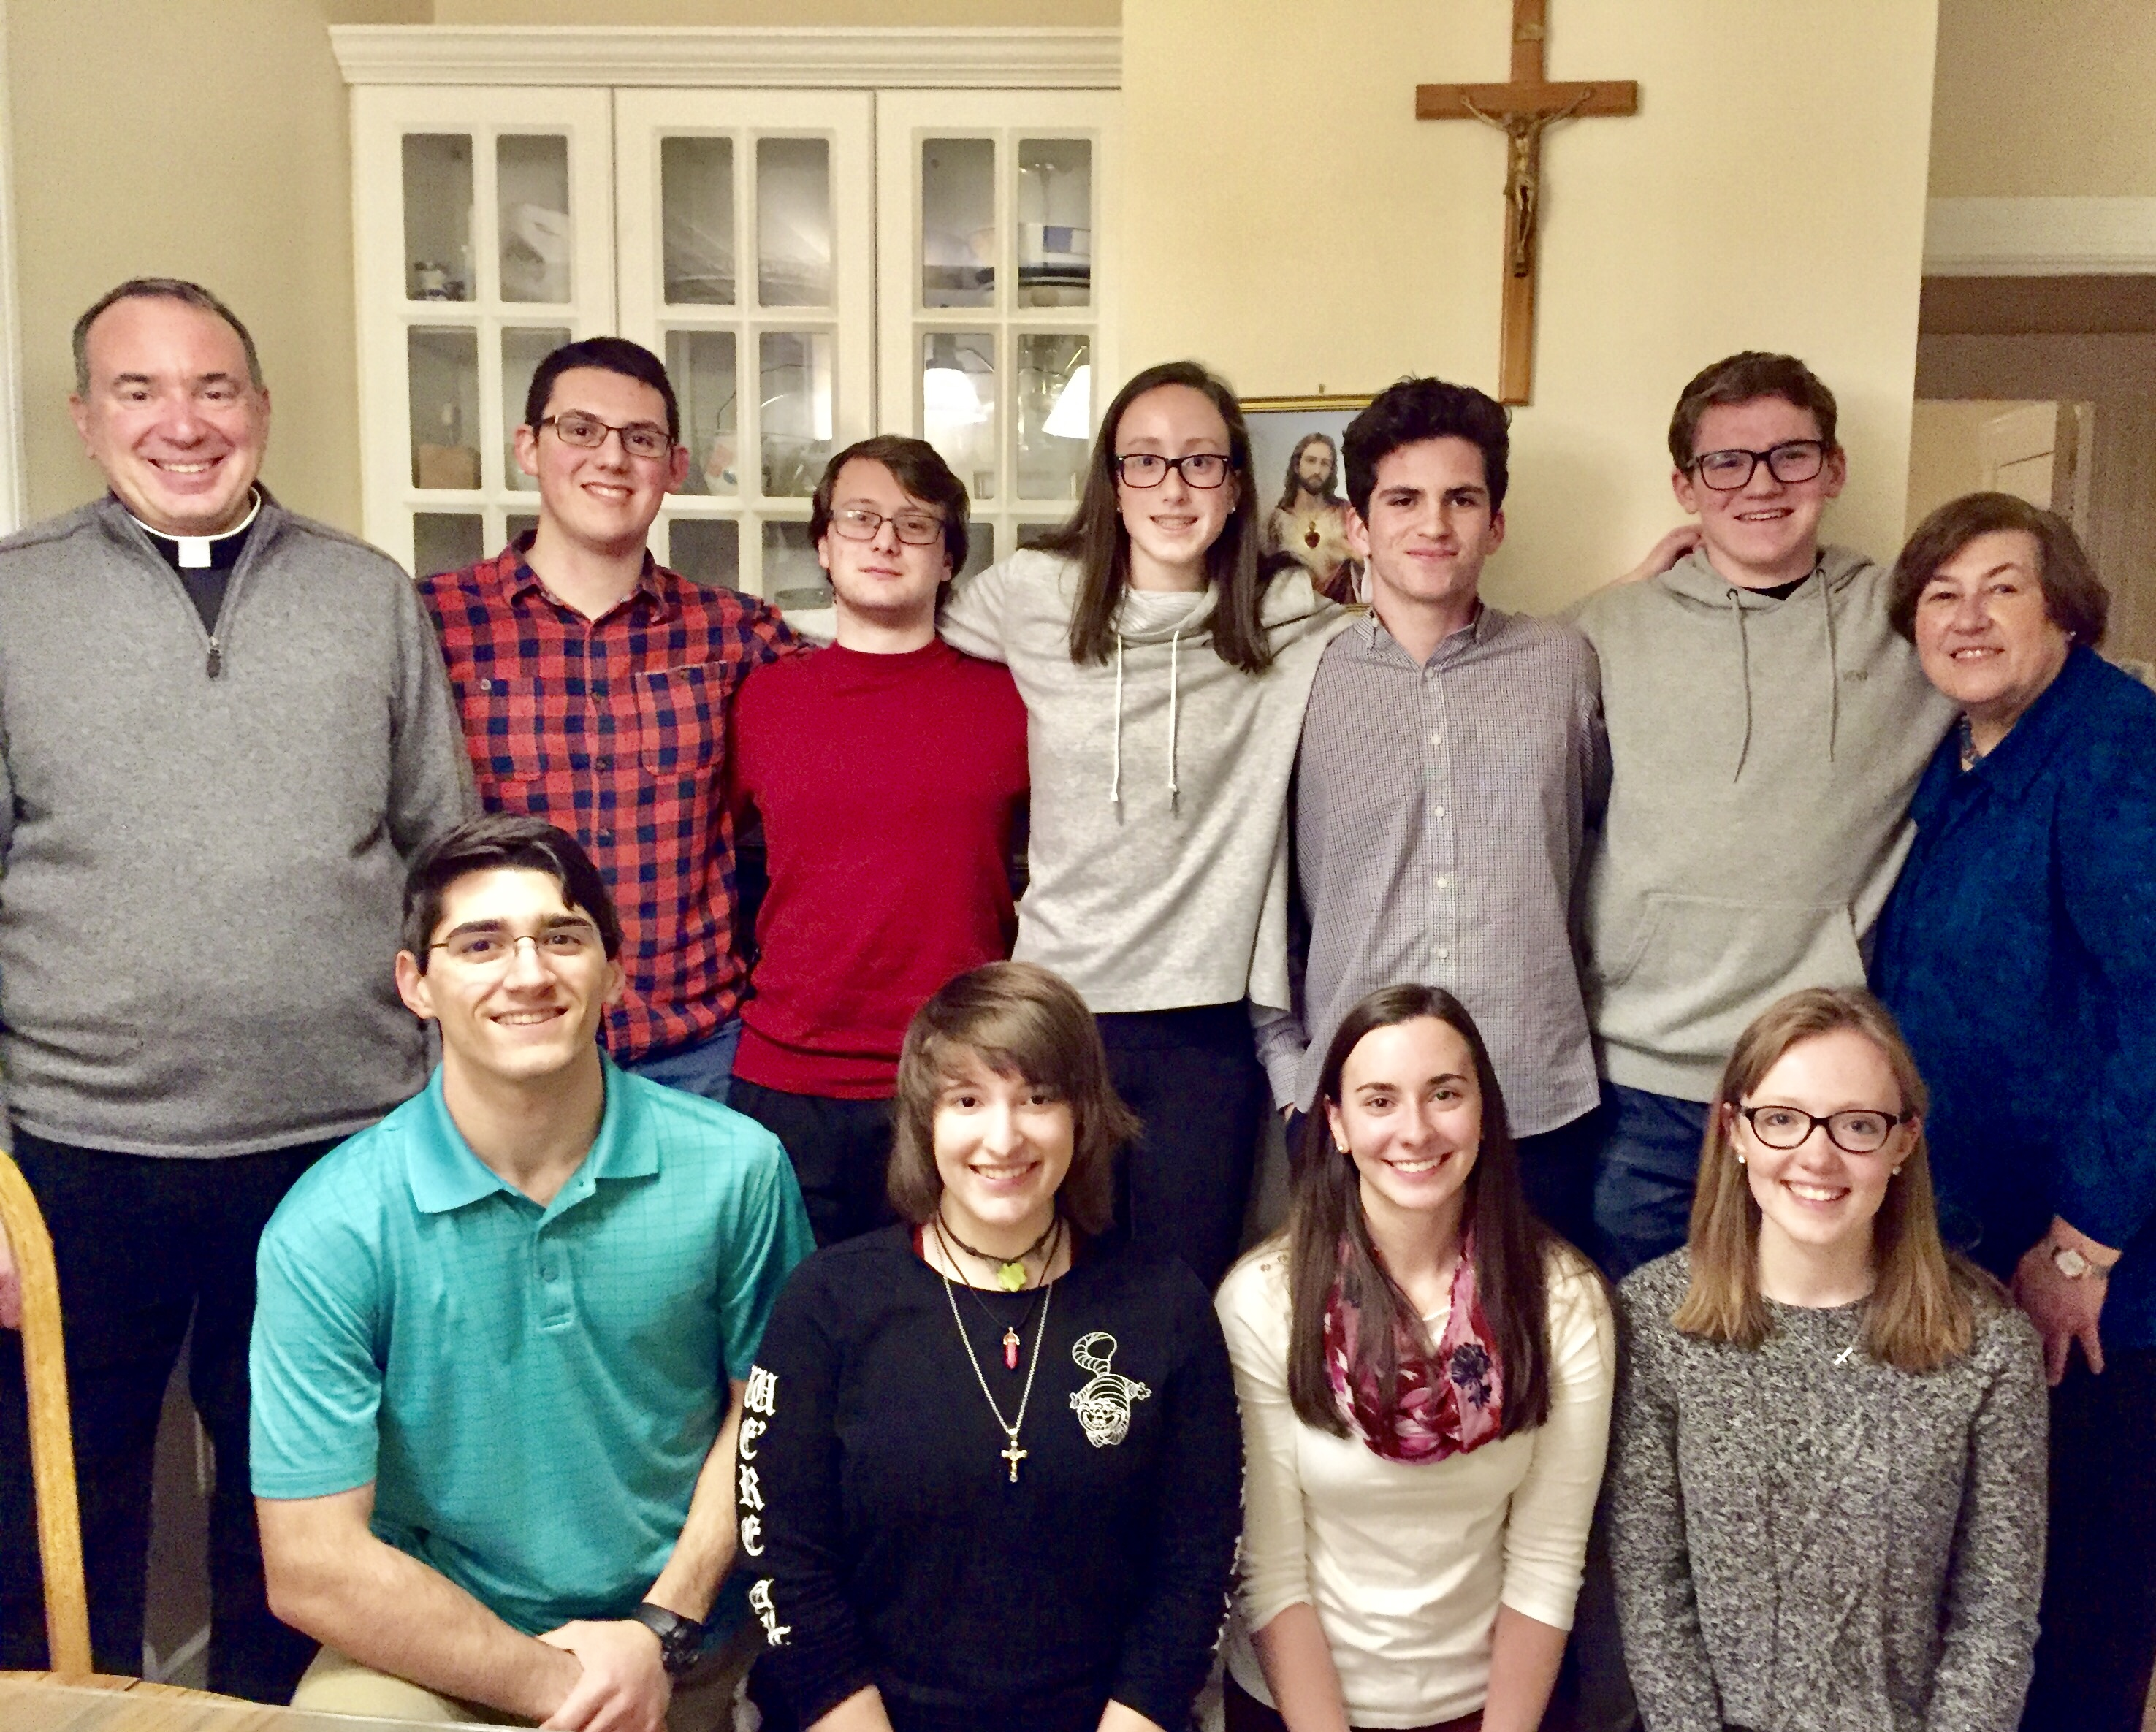 Bentley University Catholic leaders dinner at rectory Friday Feb 1, 2019